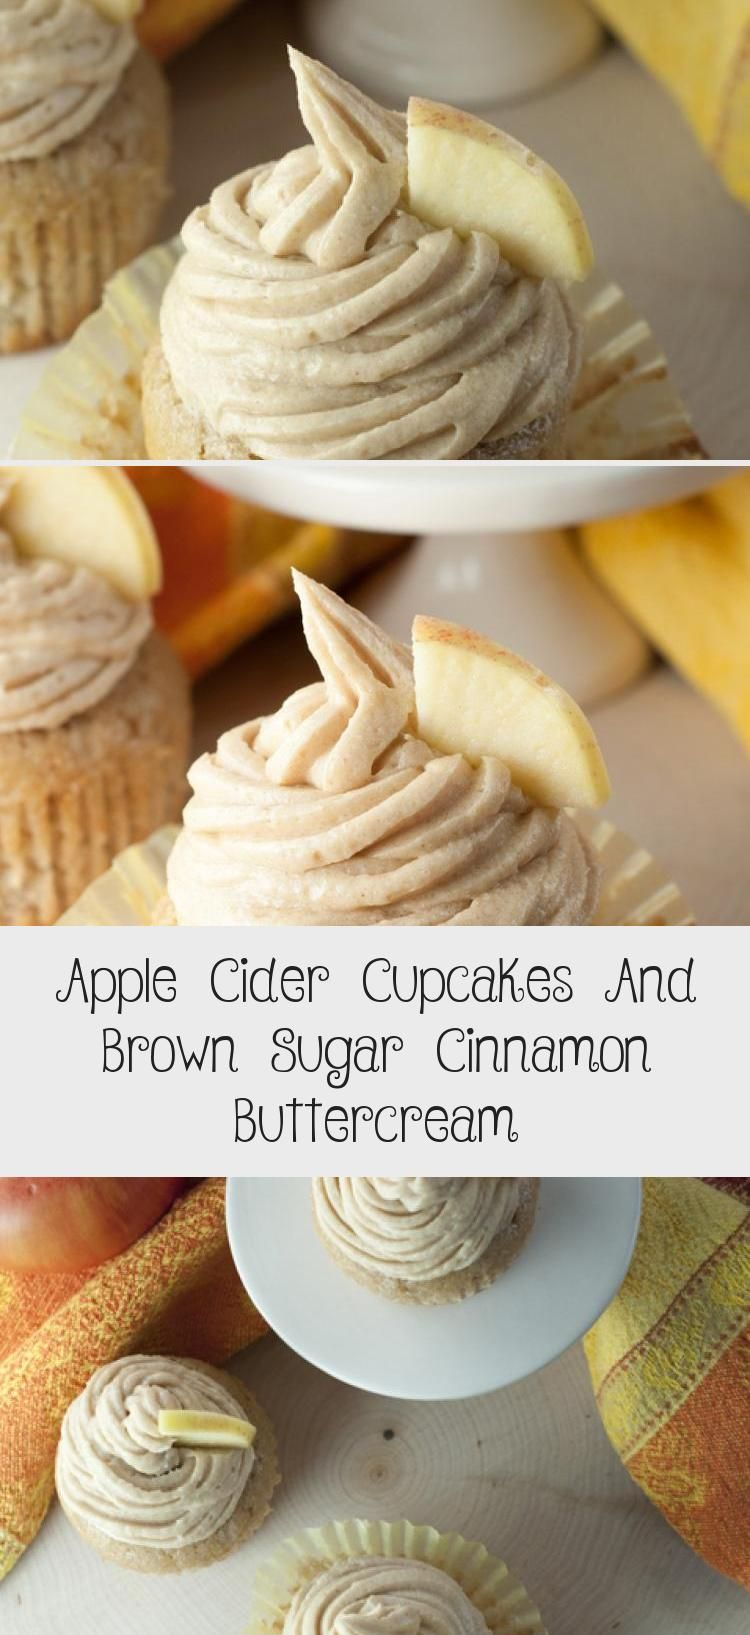 Apple Cider Cupcakes And Brown Sugar Cinnamon Buttercream #applecidercupcakeswithbrownsugar Apple Cider Cupcakes & Brown Sugar Cinnamon Buttercream | Wishes and Dishes #HealthyDessertRecipes #MexicanDessertRecipes #PeachDessertRecipes #FruitDessertRecipes #MangoDessertRecipes #applecidercupcakeswithbrownsugar